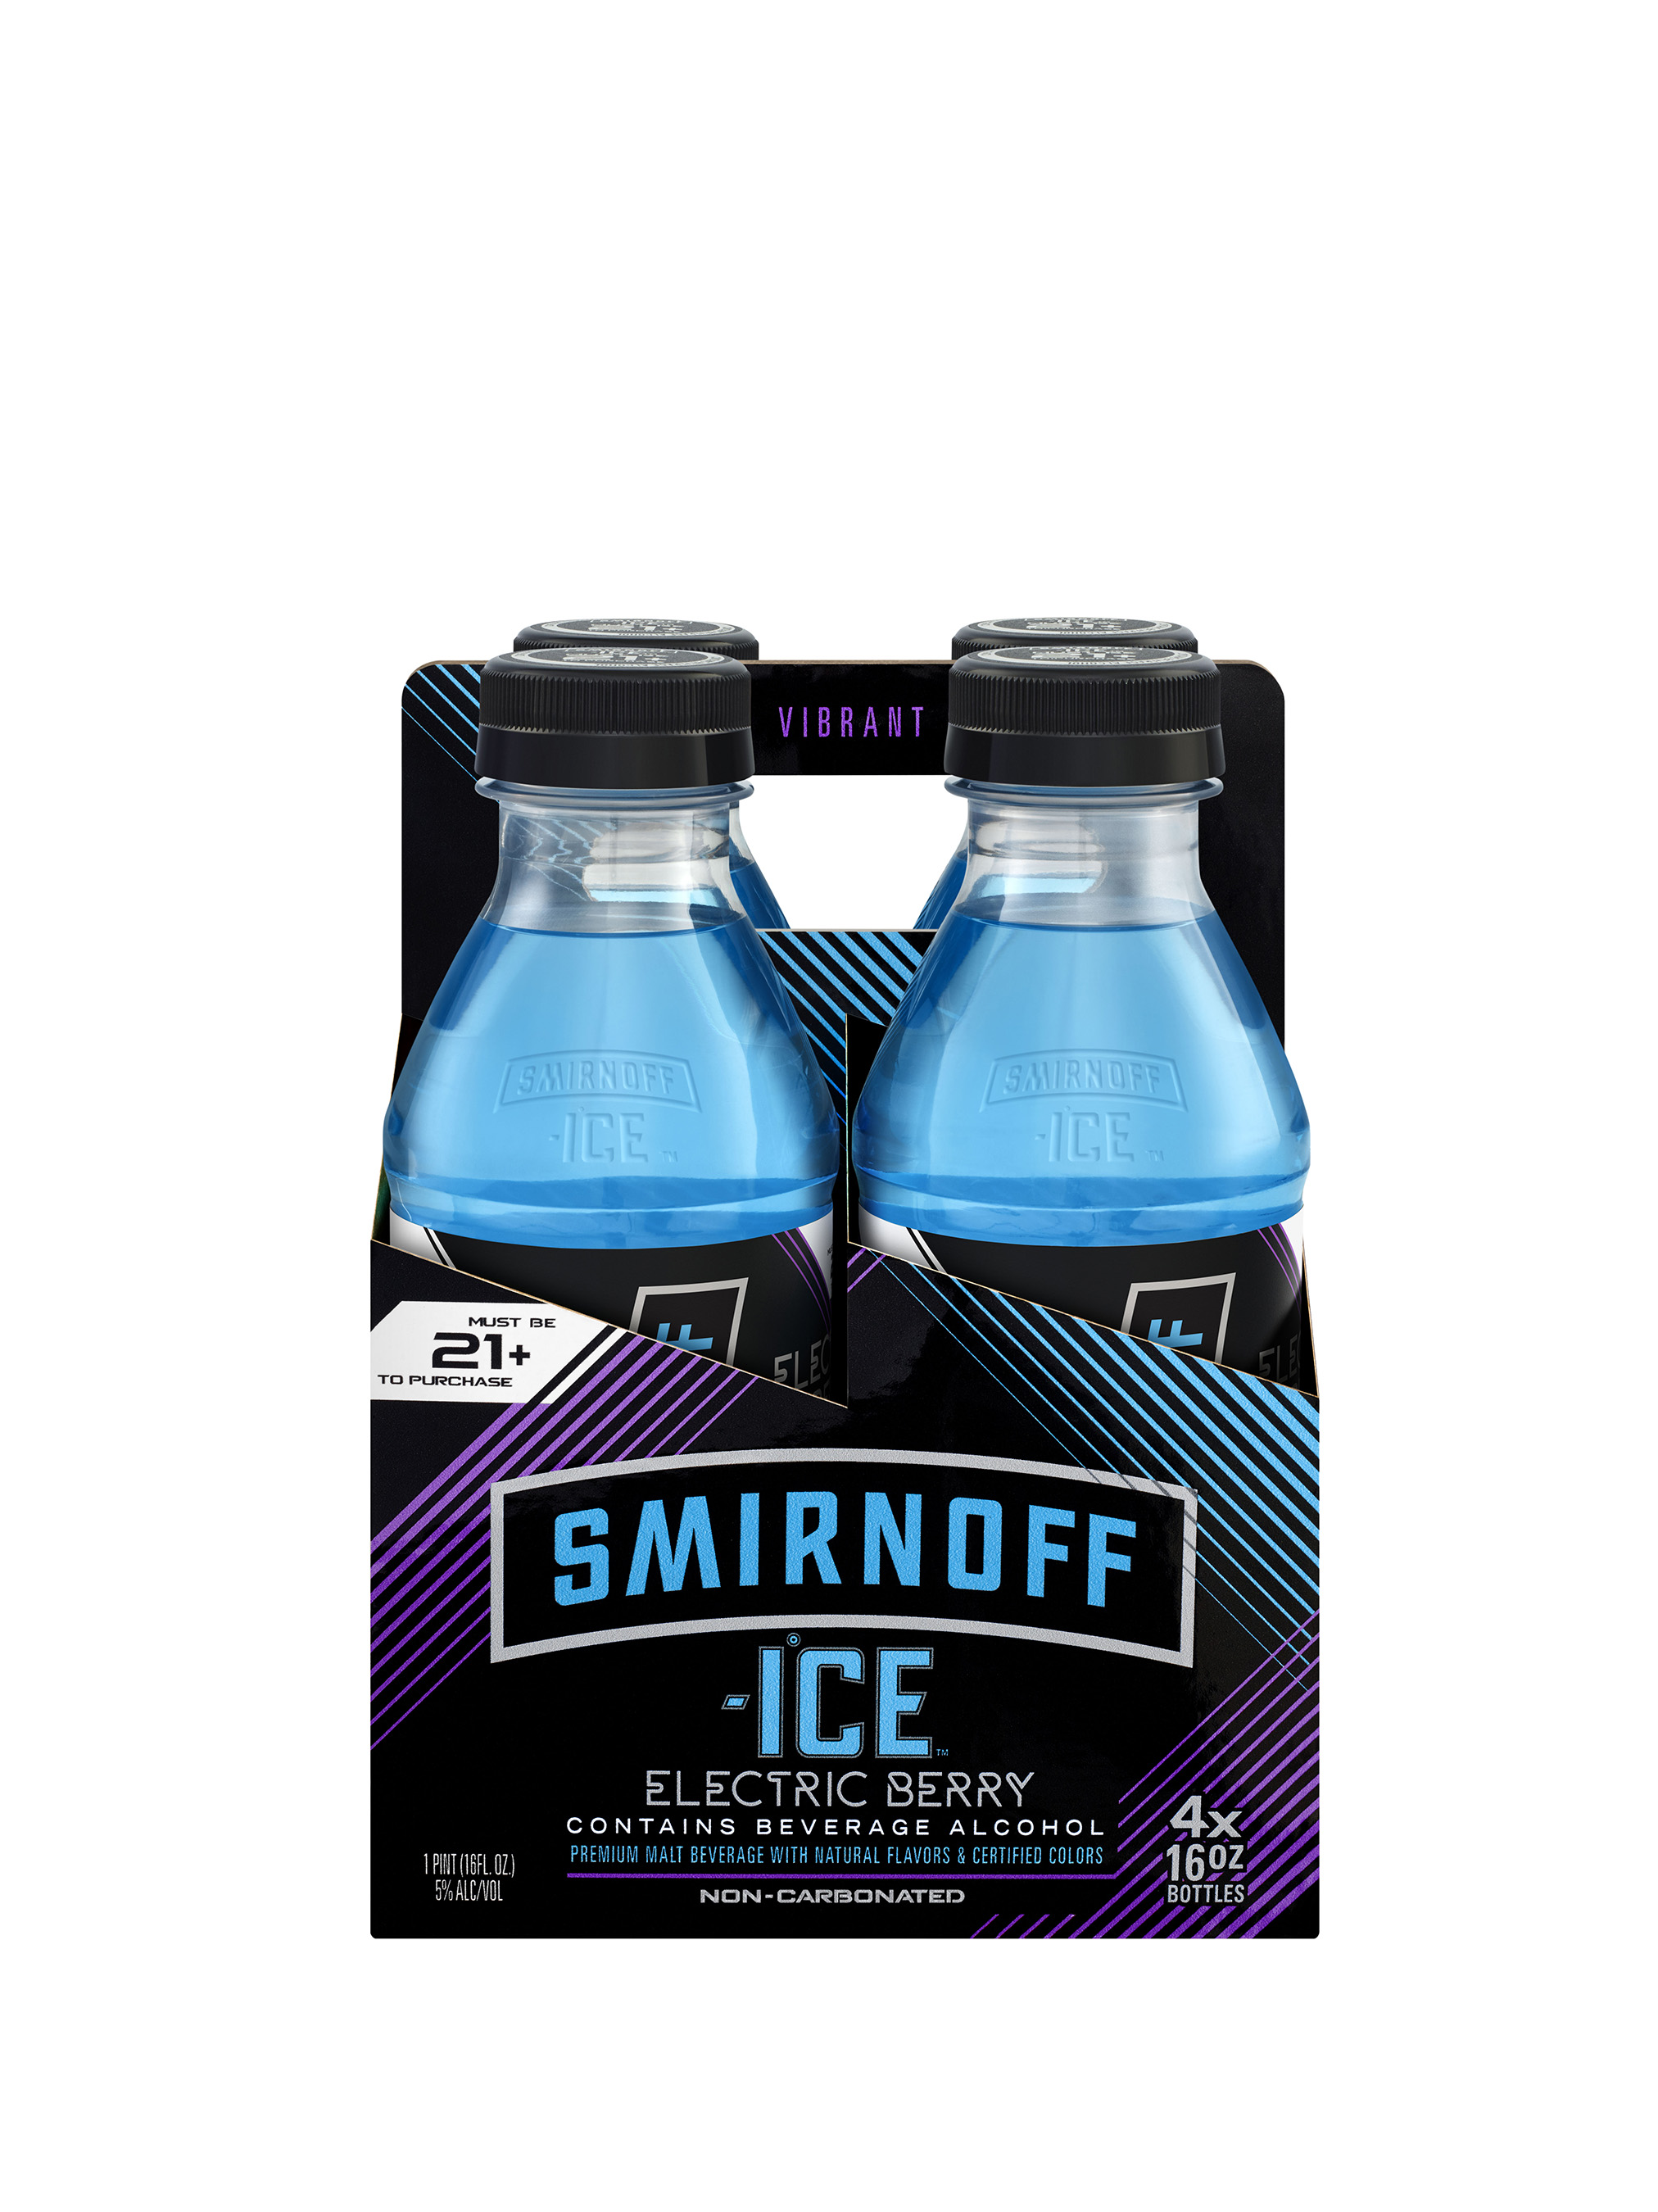 SMIRNOFF ICE KEEPS IT MOVING WITH ITS LATEST CAMPAIGN TO